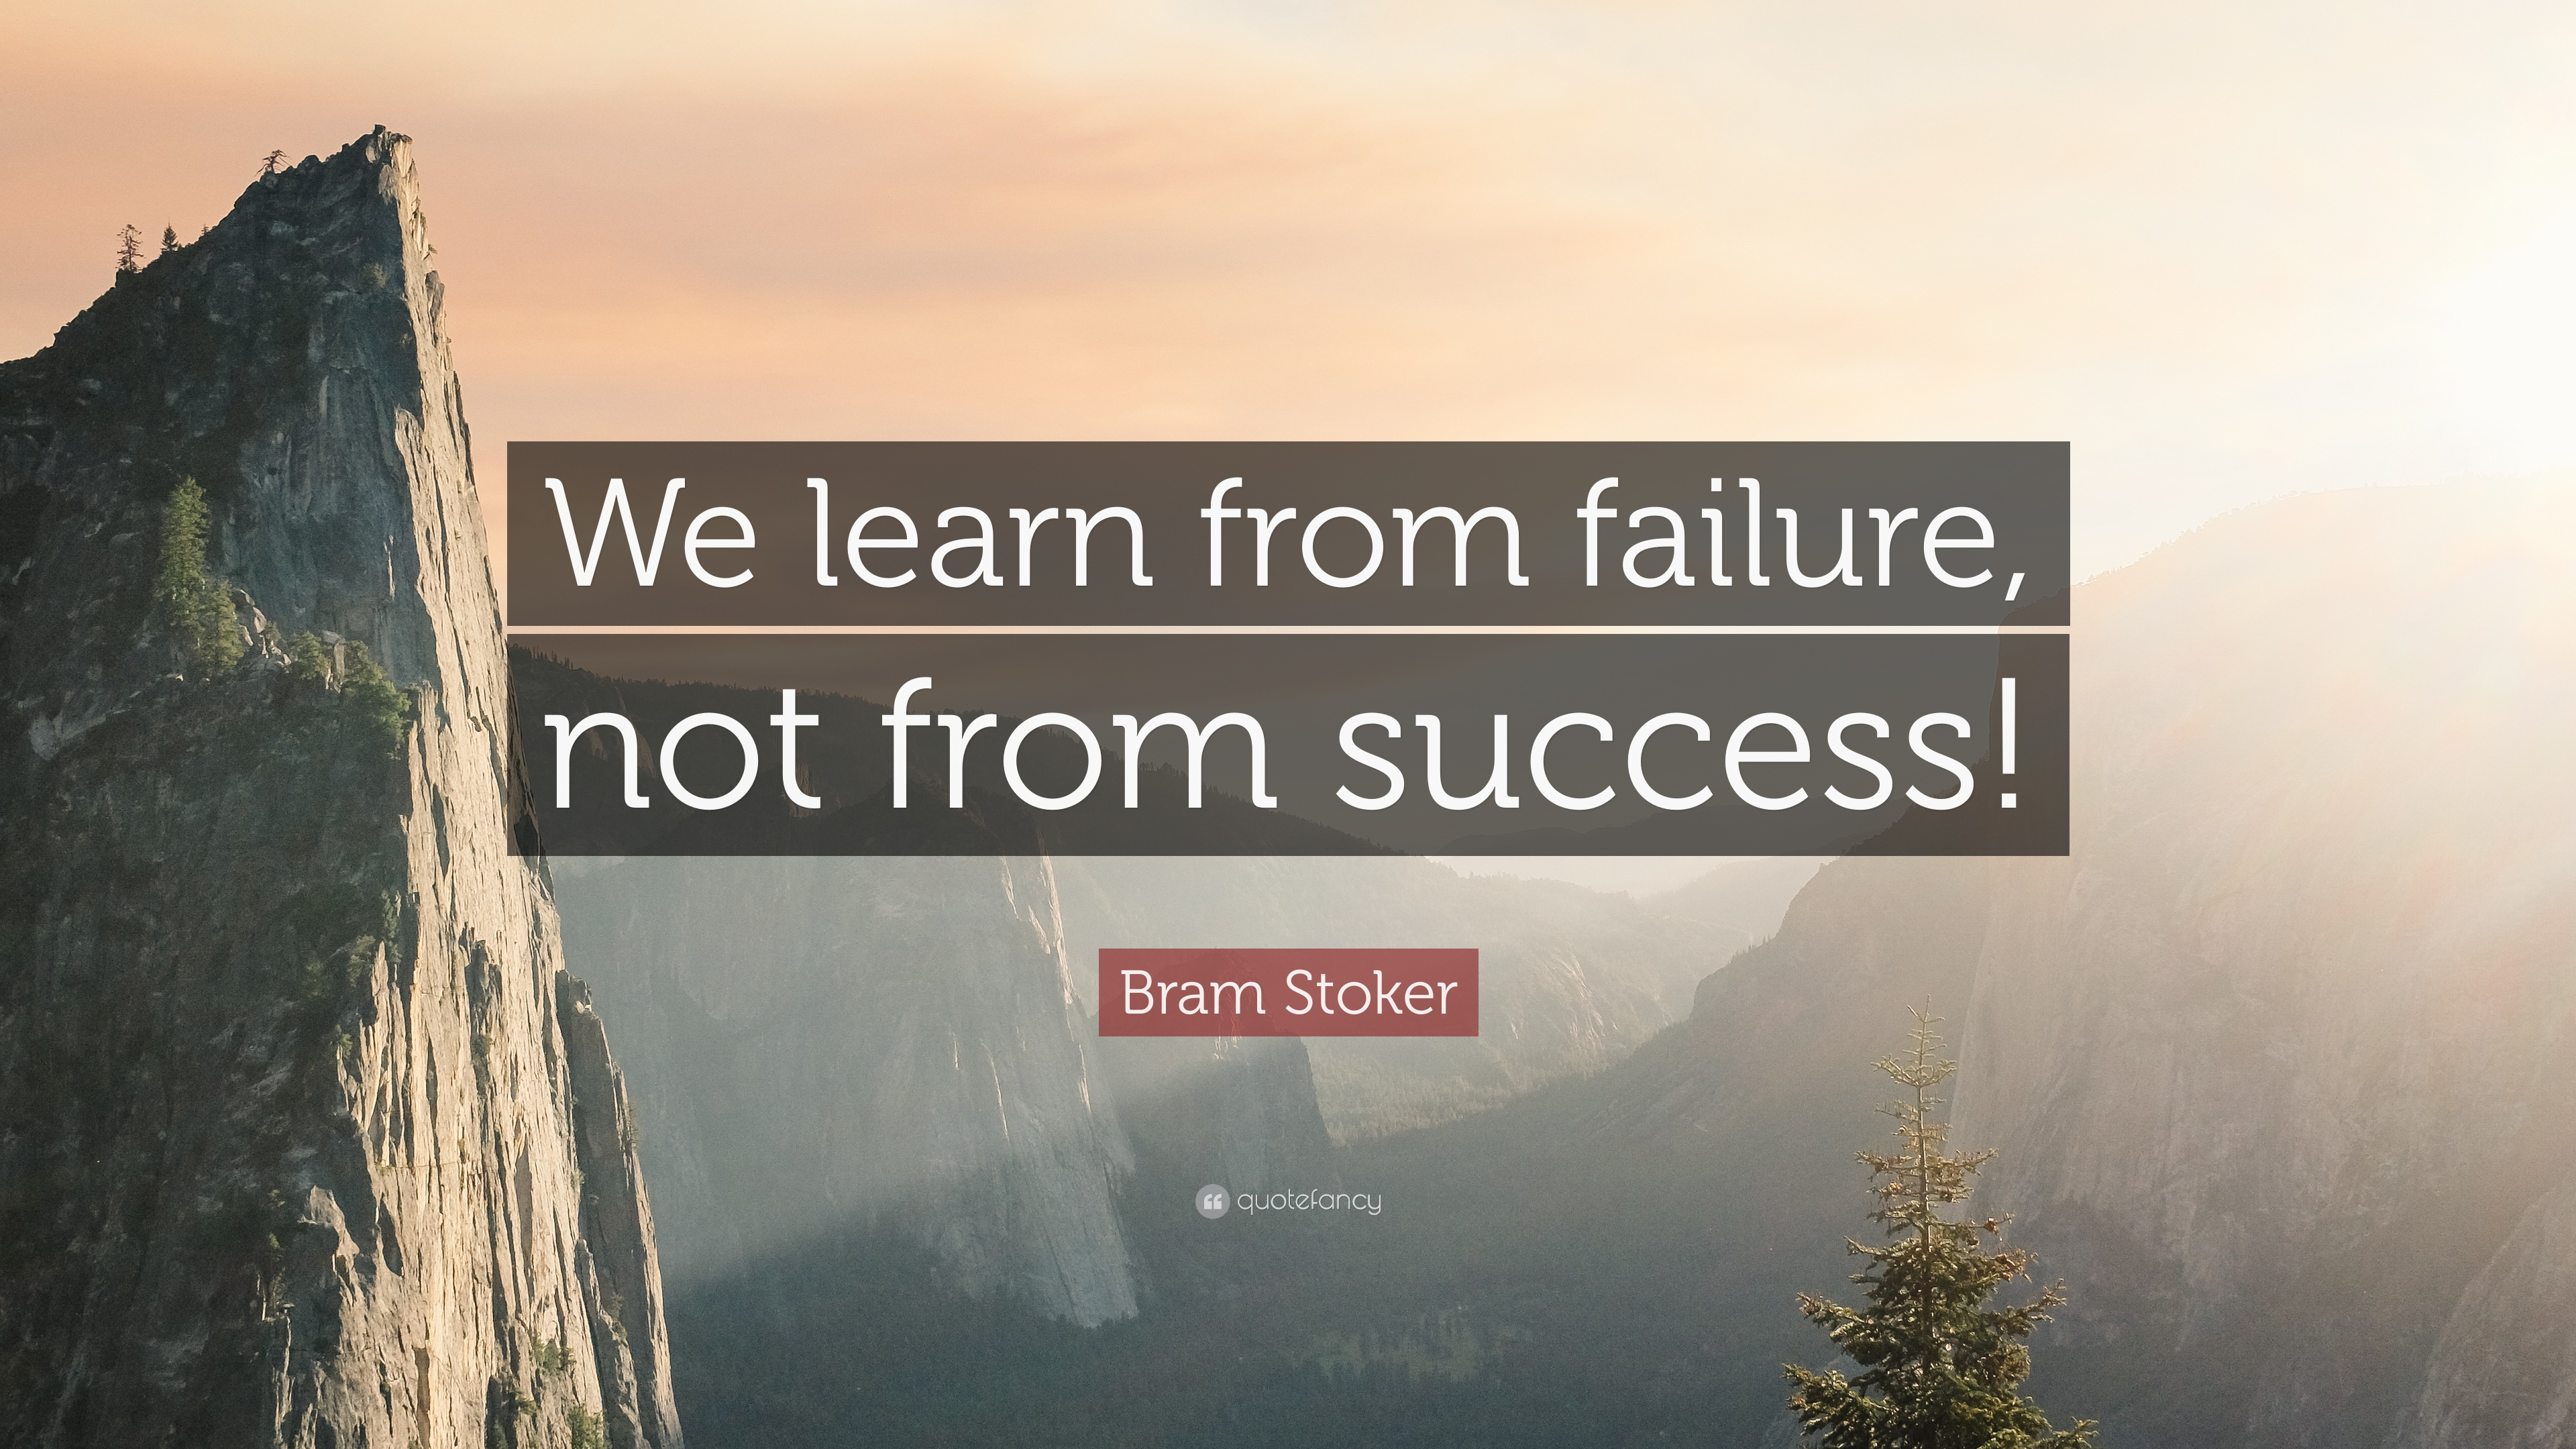 We learn from failure not success